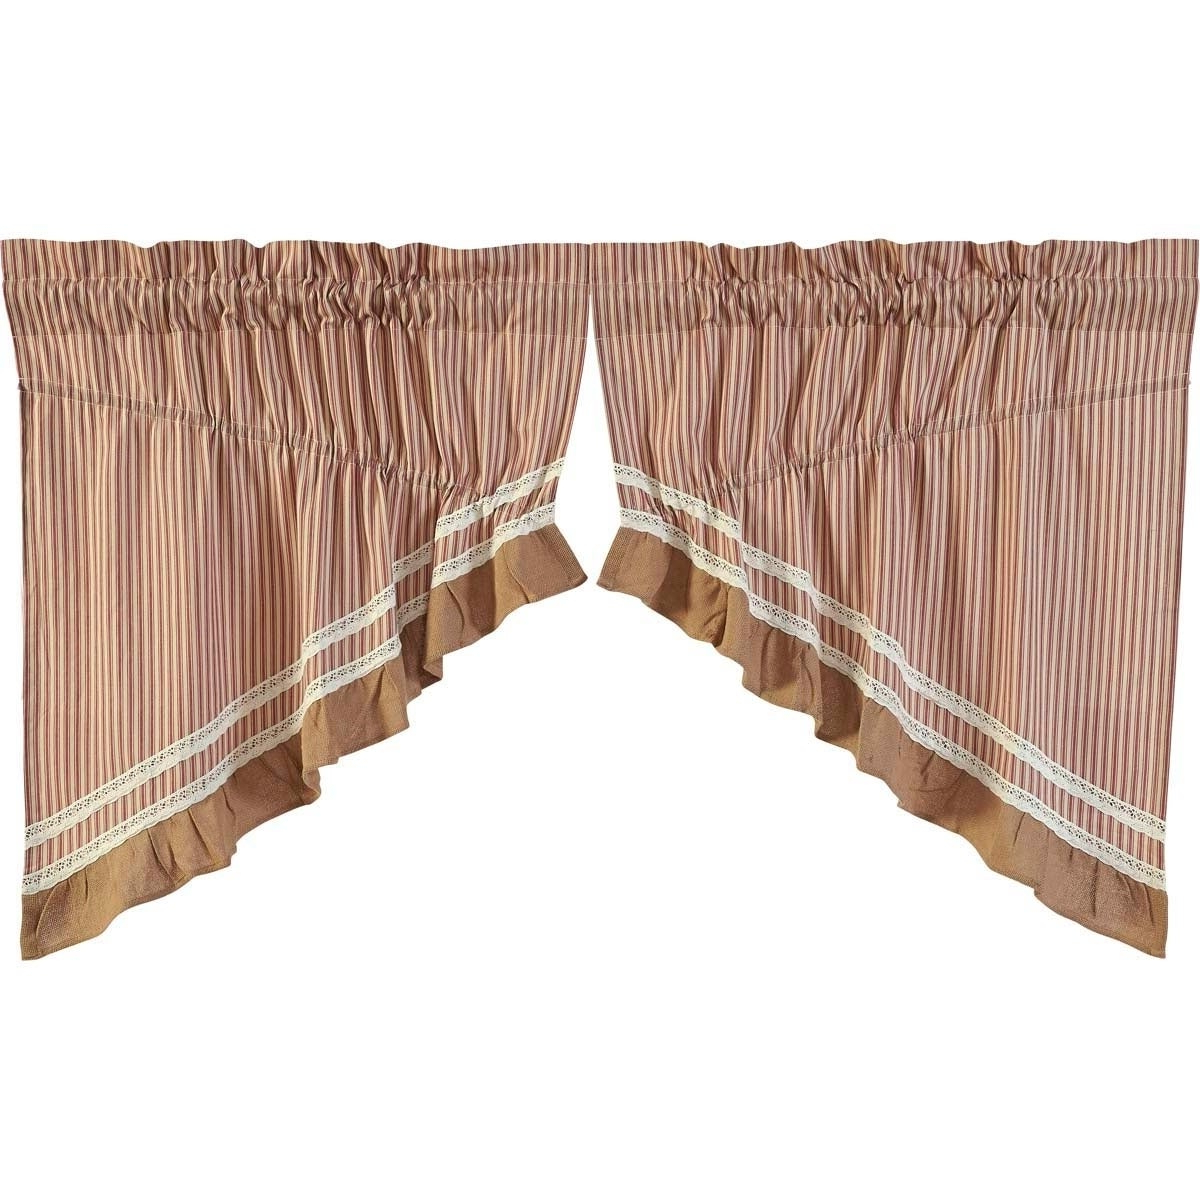 Rod Pocket Cotton Striped Lace Cotton Burlap Kitchen Curtains Intended For Most Recently Released Farmhouse Kitchen Curtains Vhc Kendra Stripe Prairie Swag (View 8 of 20)